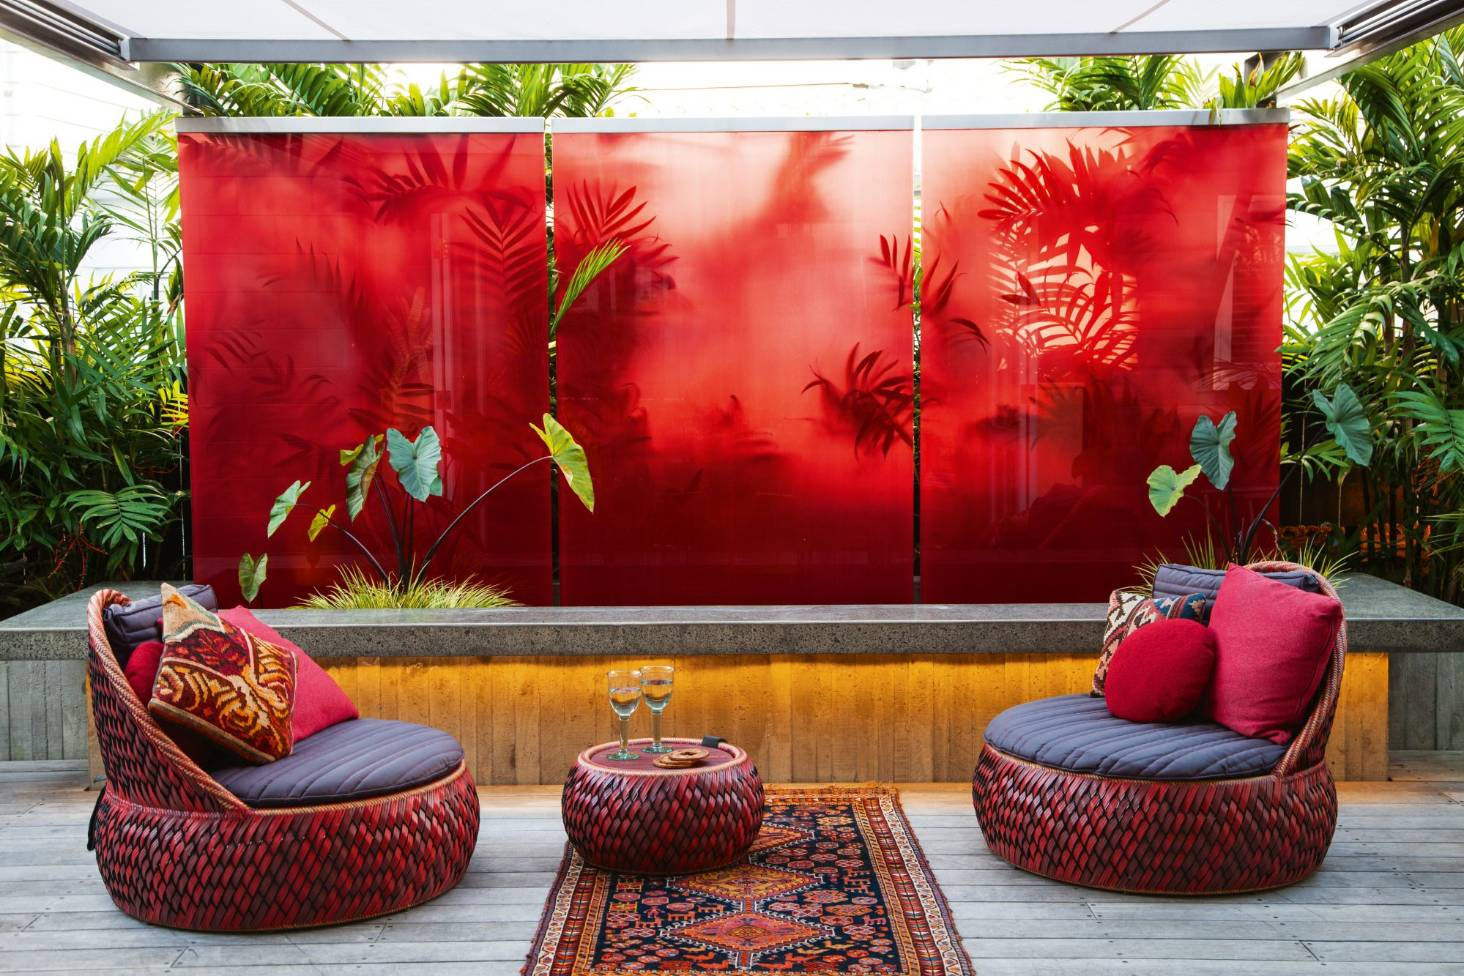 My favourite space dramatic red outdoor room